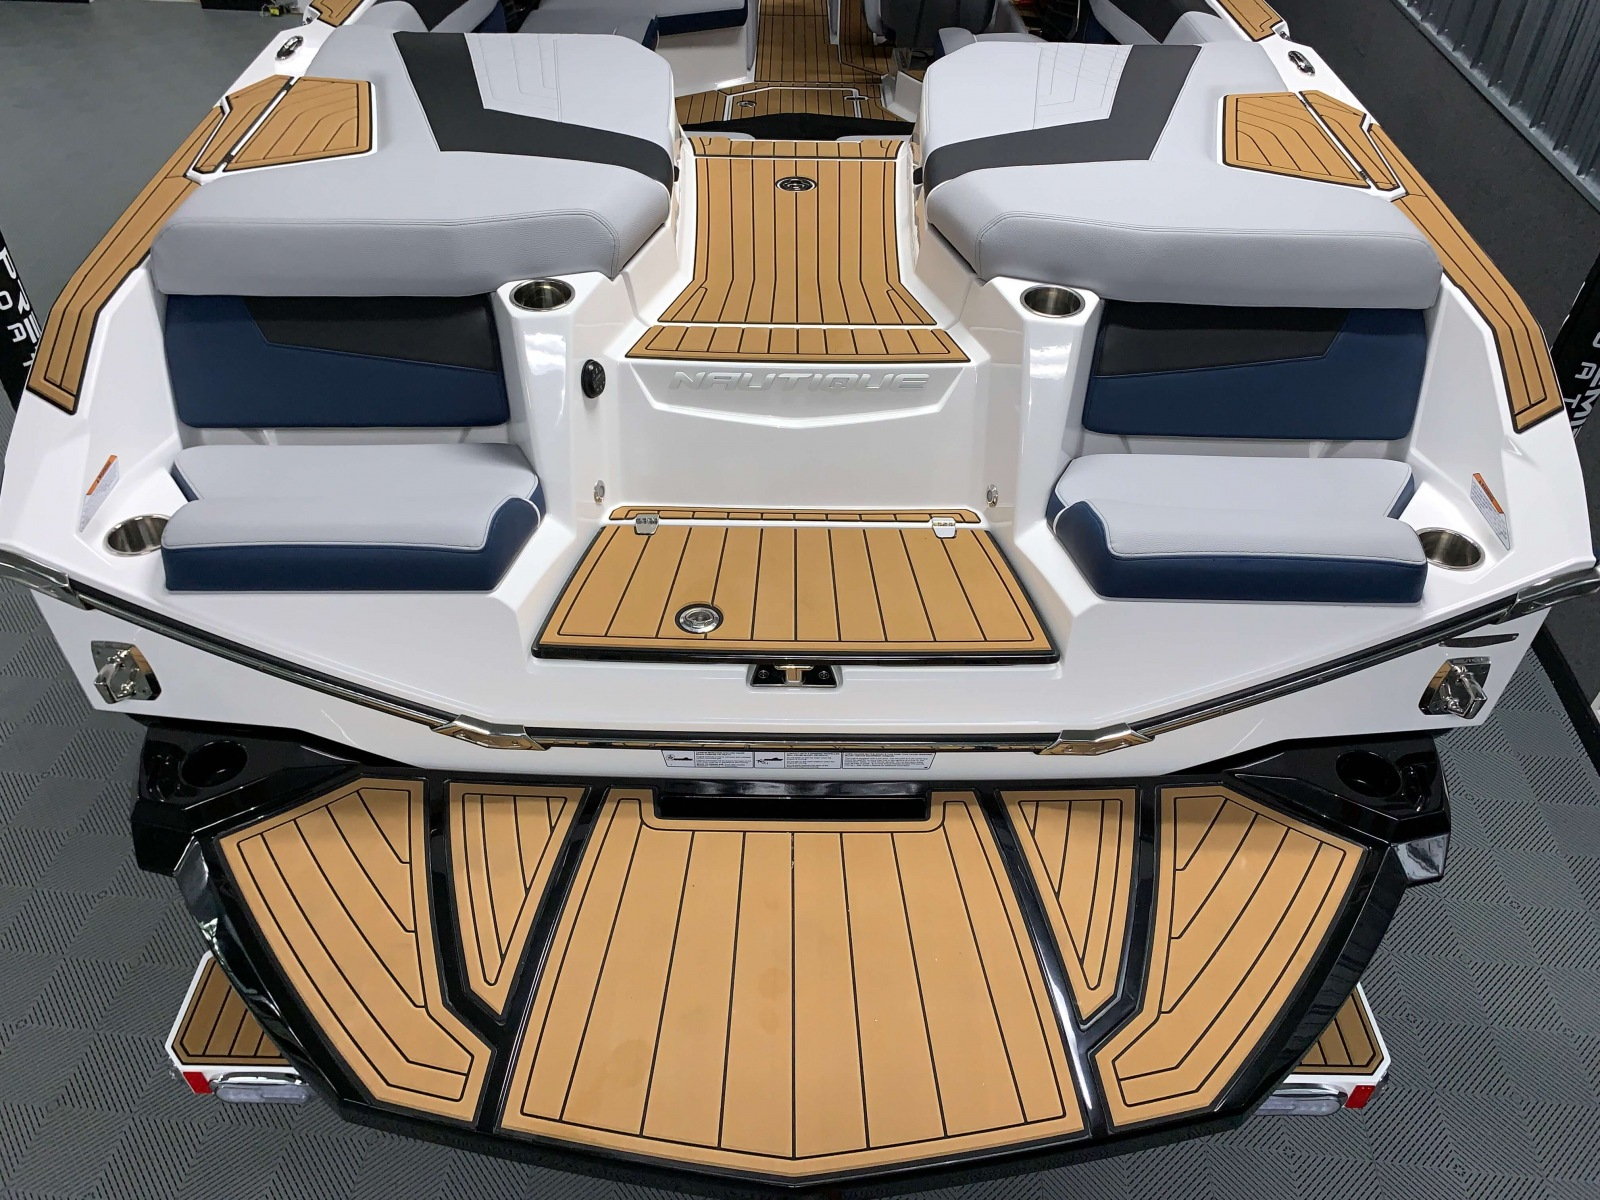 Transom of the 2021 Nautique G23 Wake Boat